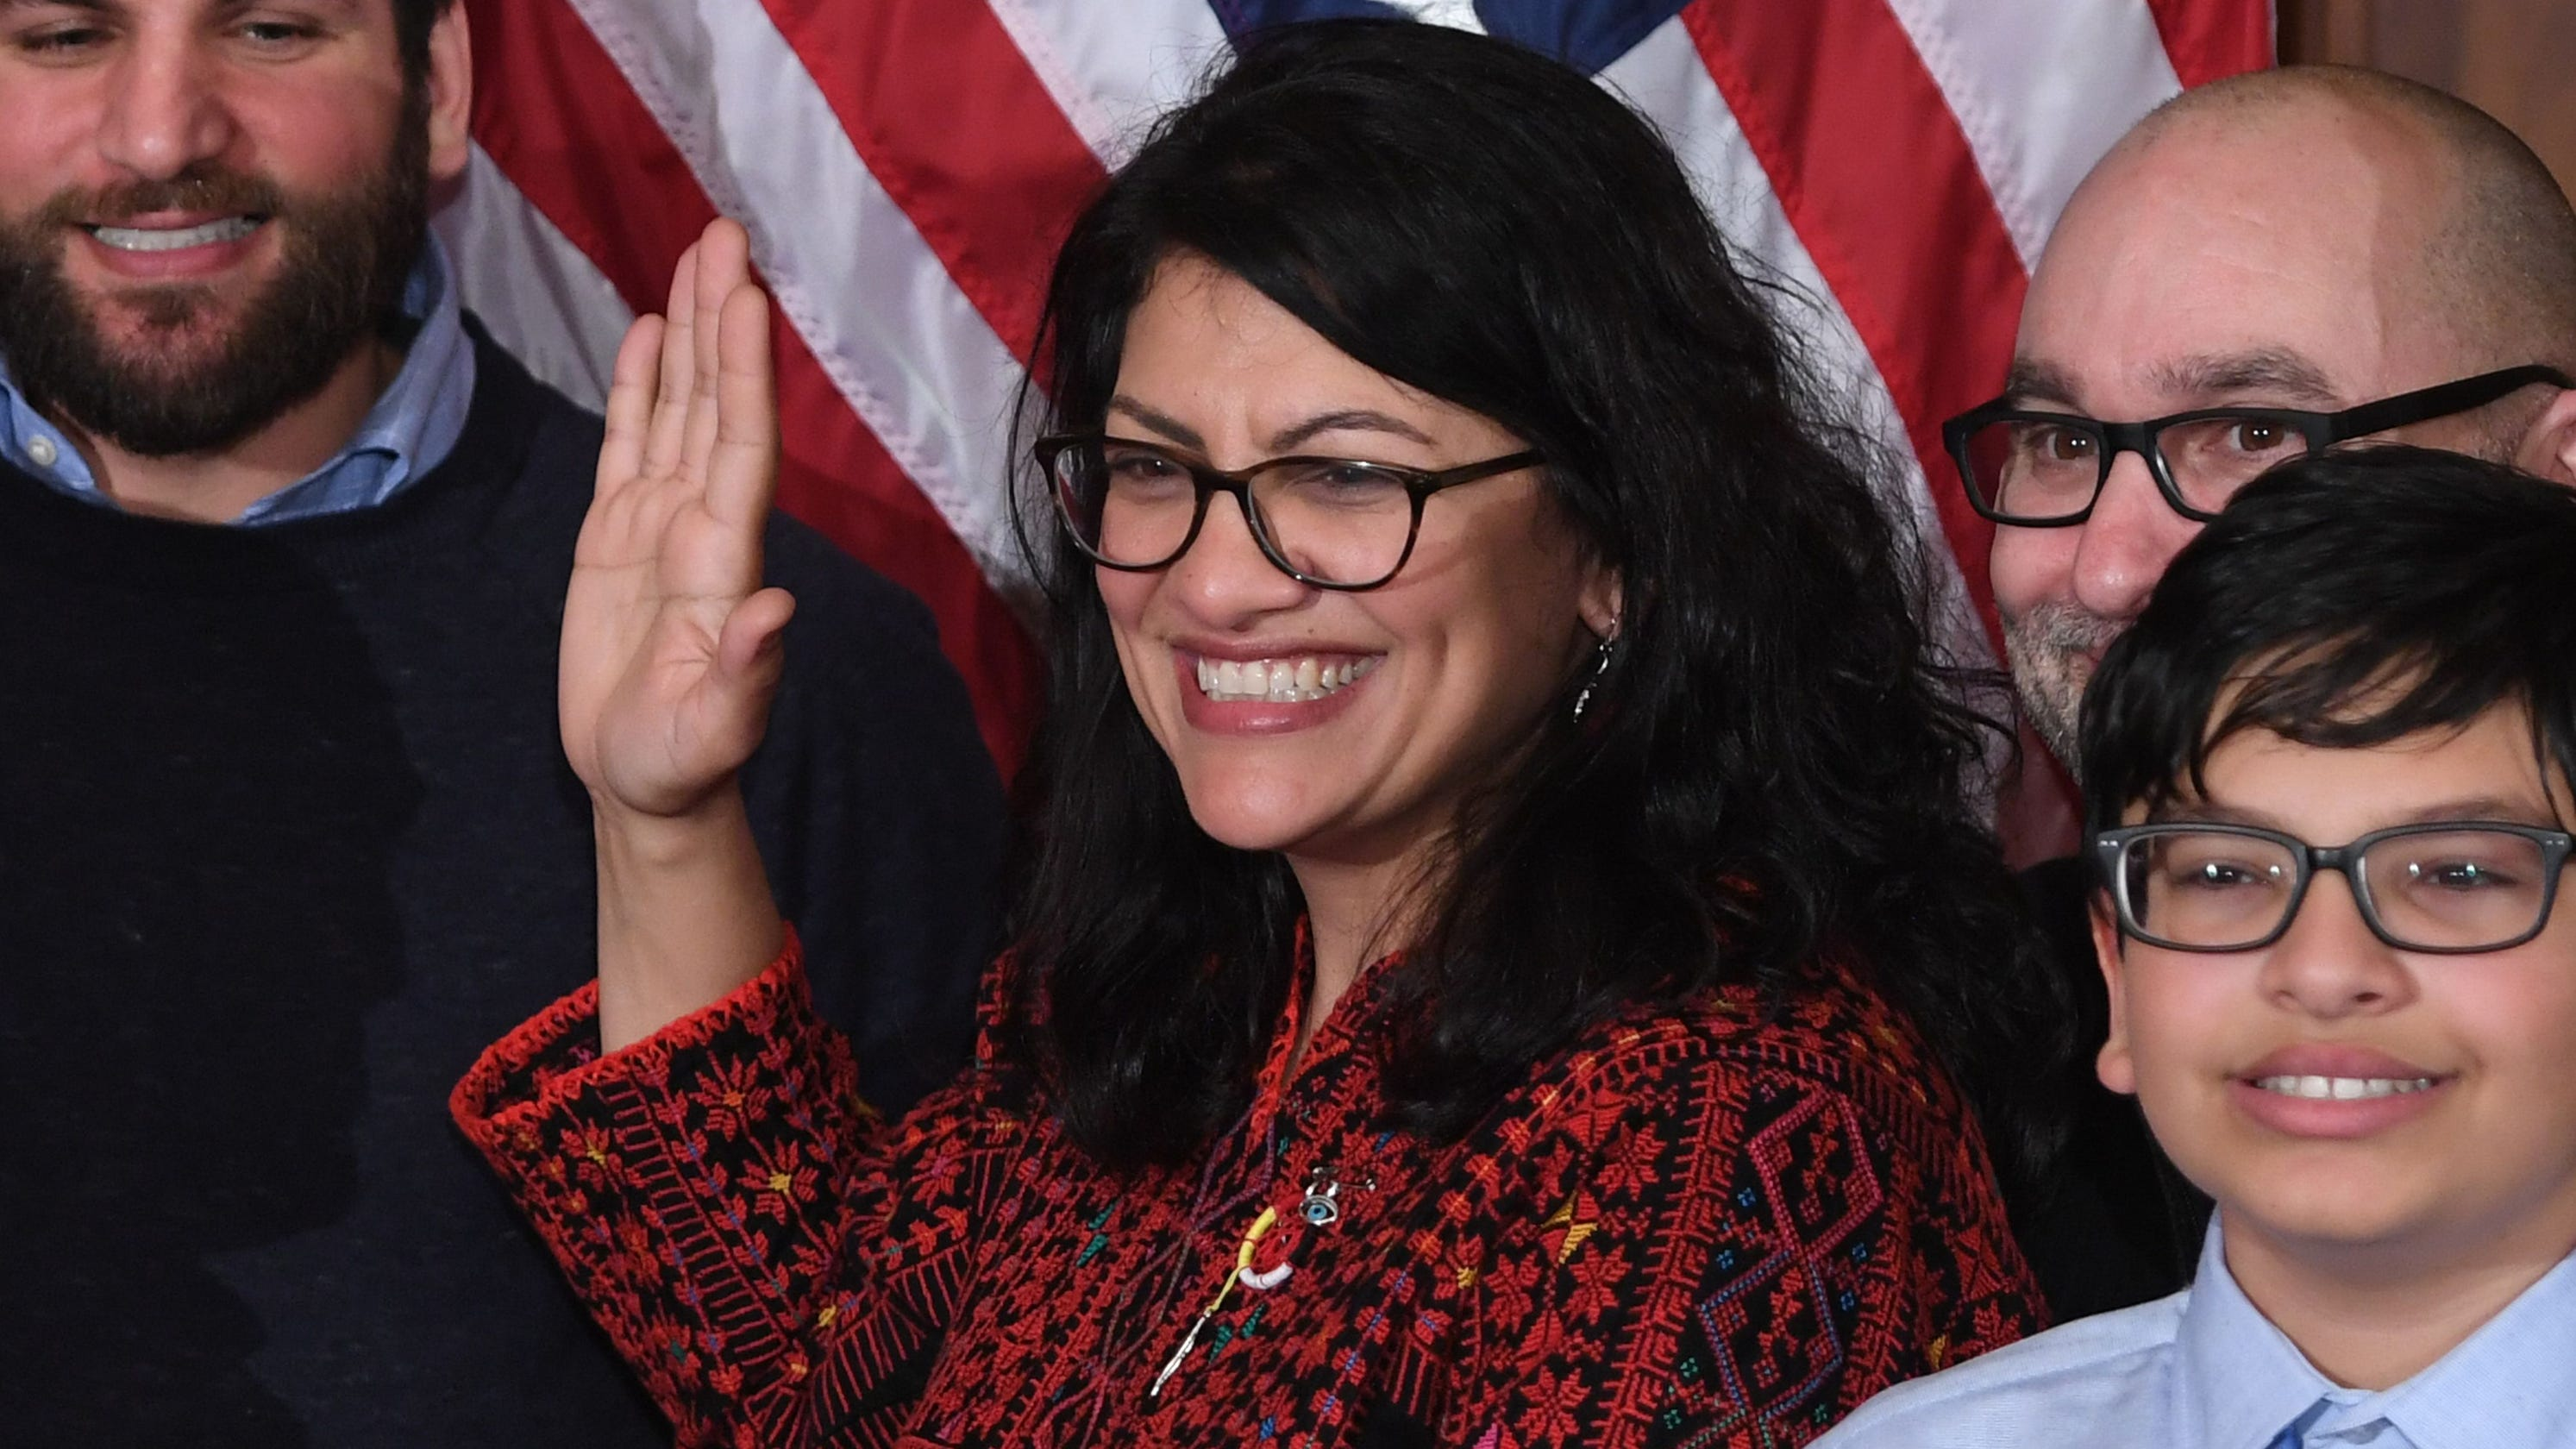 Tlaib apologizes - for distraction, not for cursing